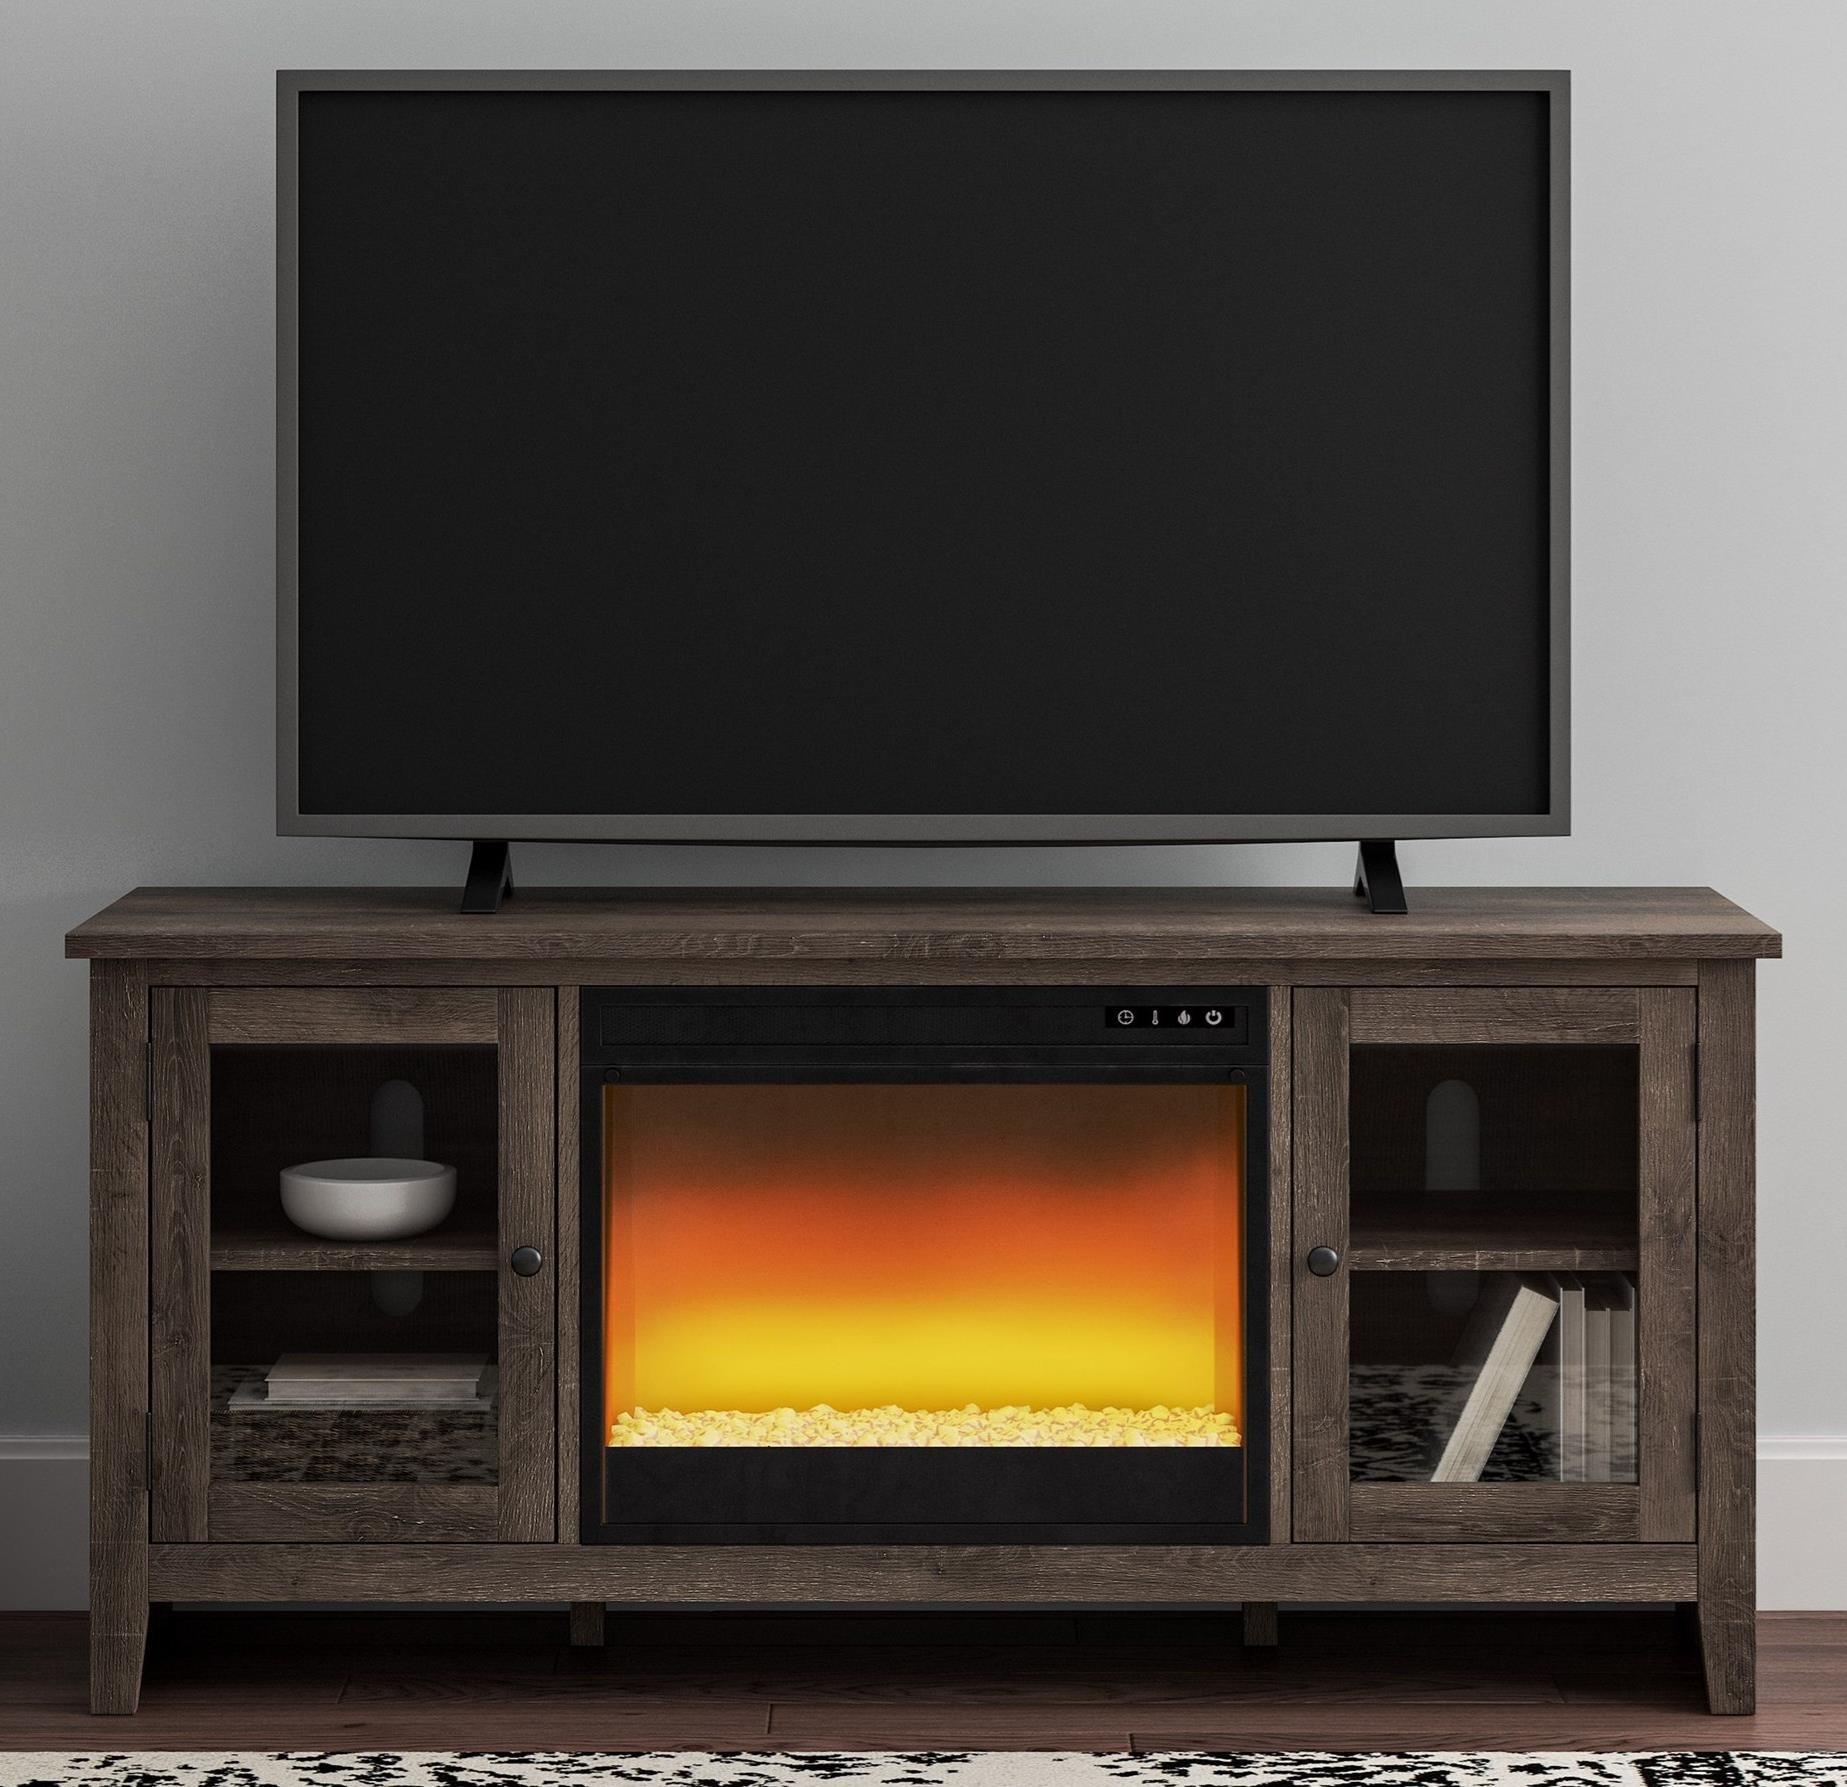 Arlenbry Large TV Stand w/ Fireplace Insert by Signature Design by Ashley at Home Furnishings Direct